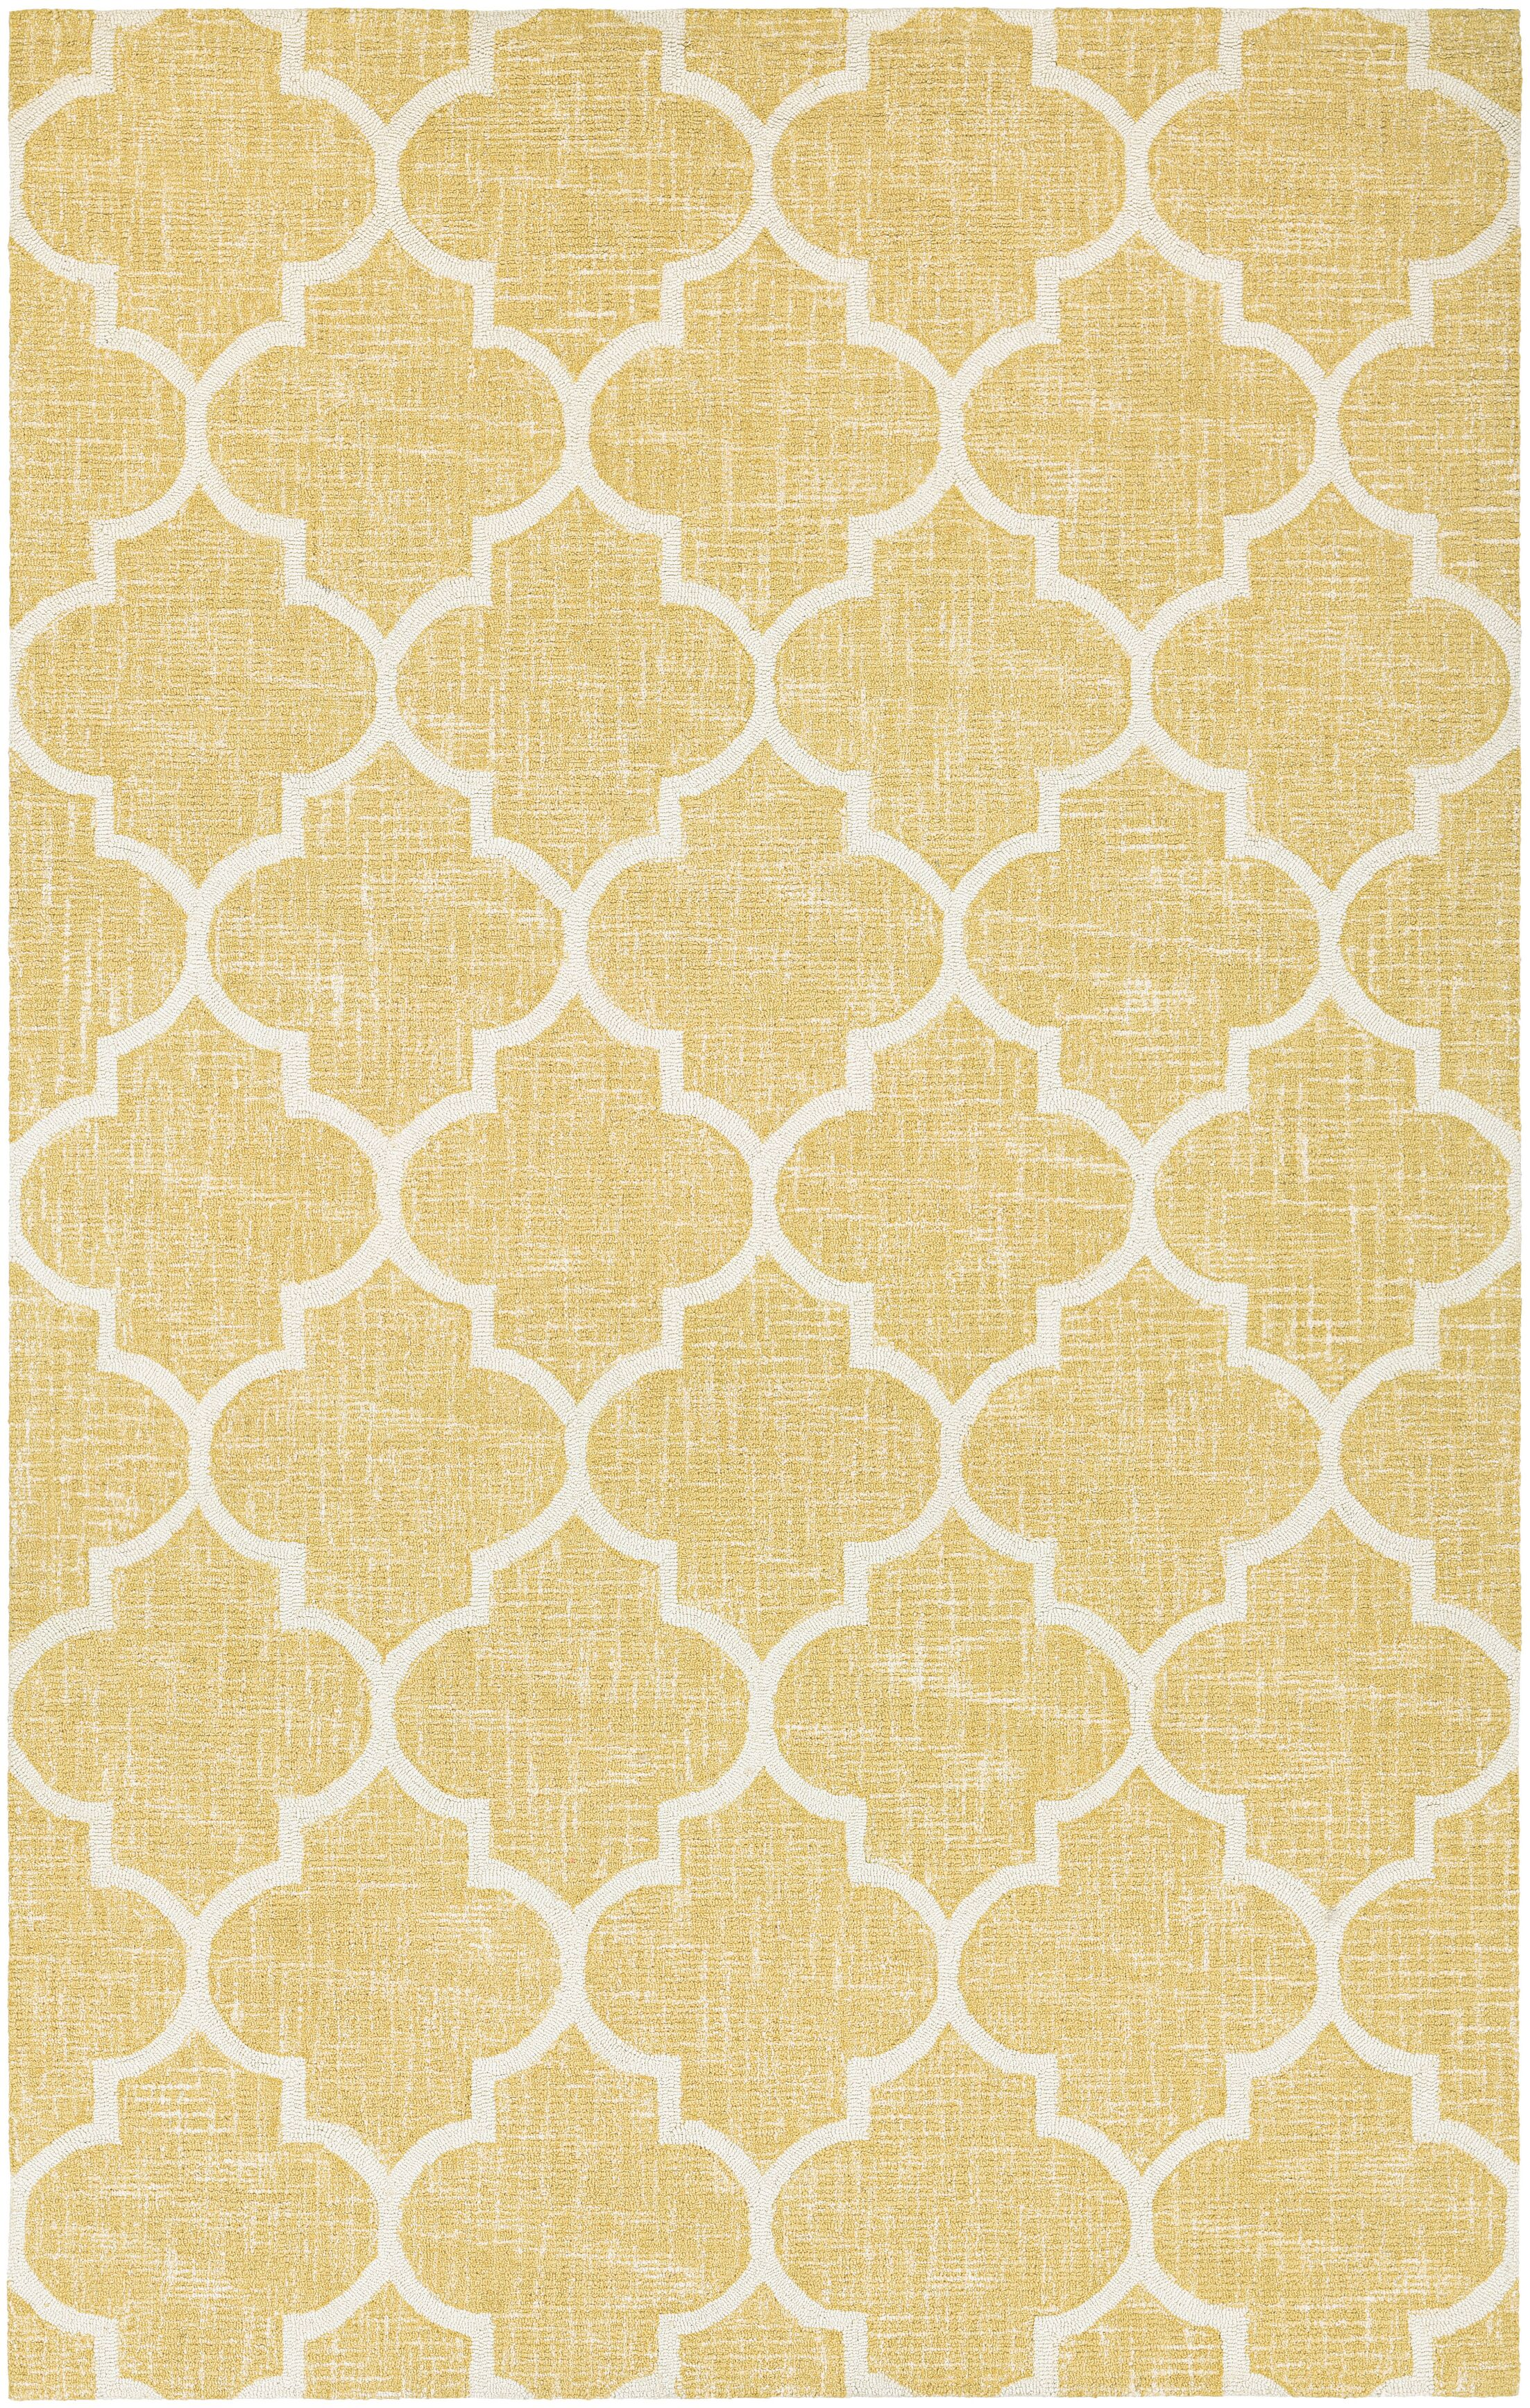 Lissette Hand-Woven Gold/Ivory Area Rug Rug Size: Rectangle 7' x 10'7